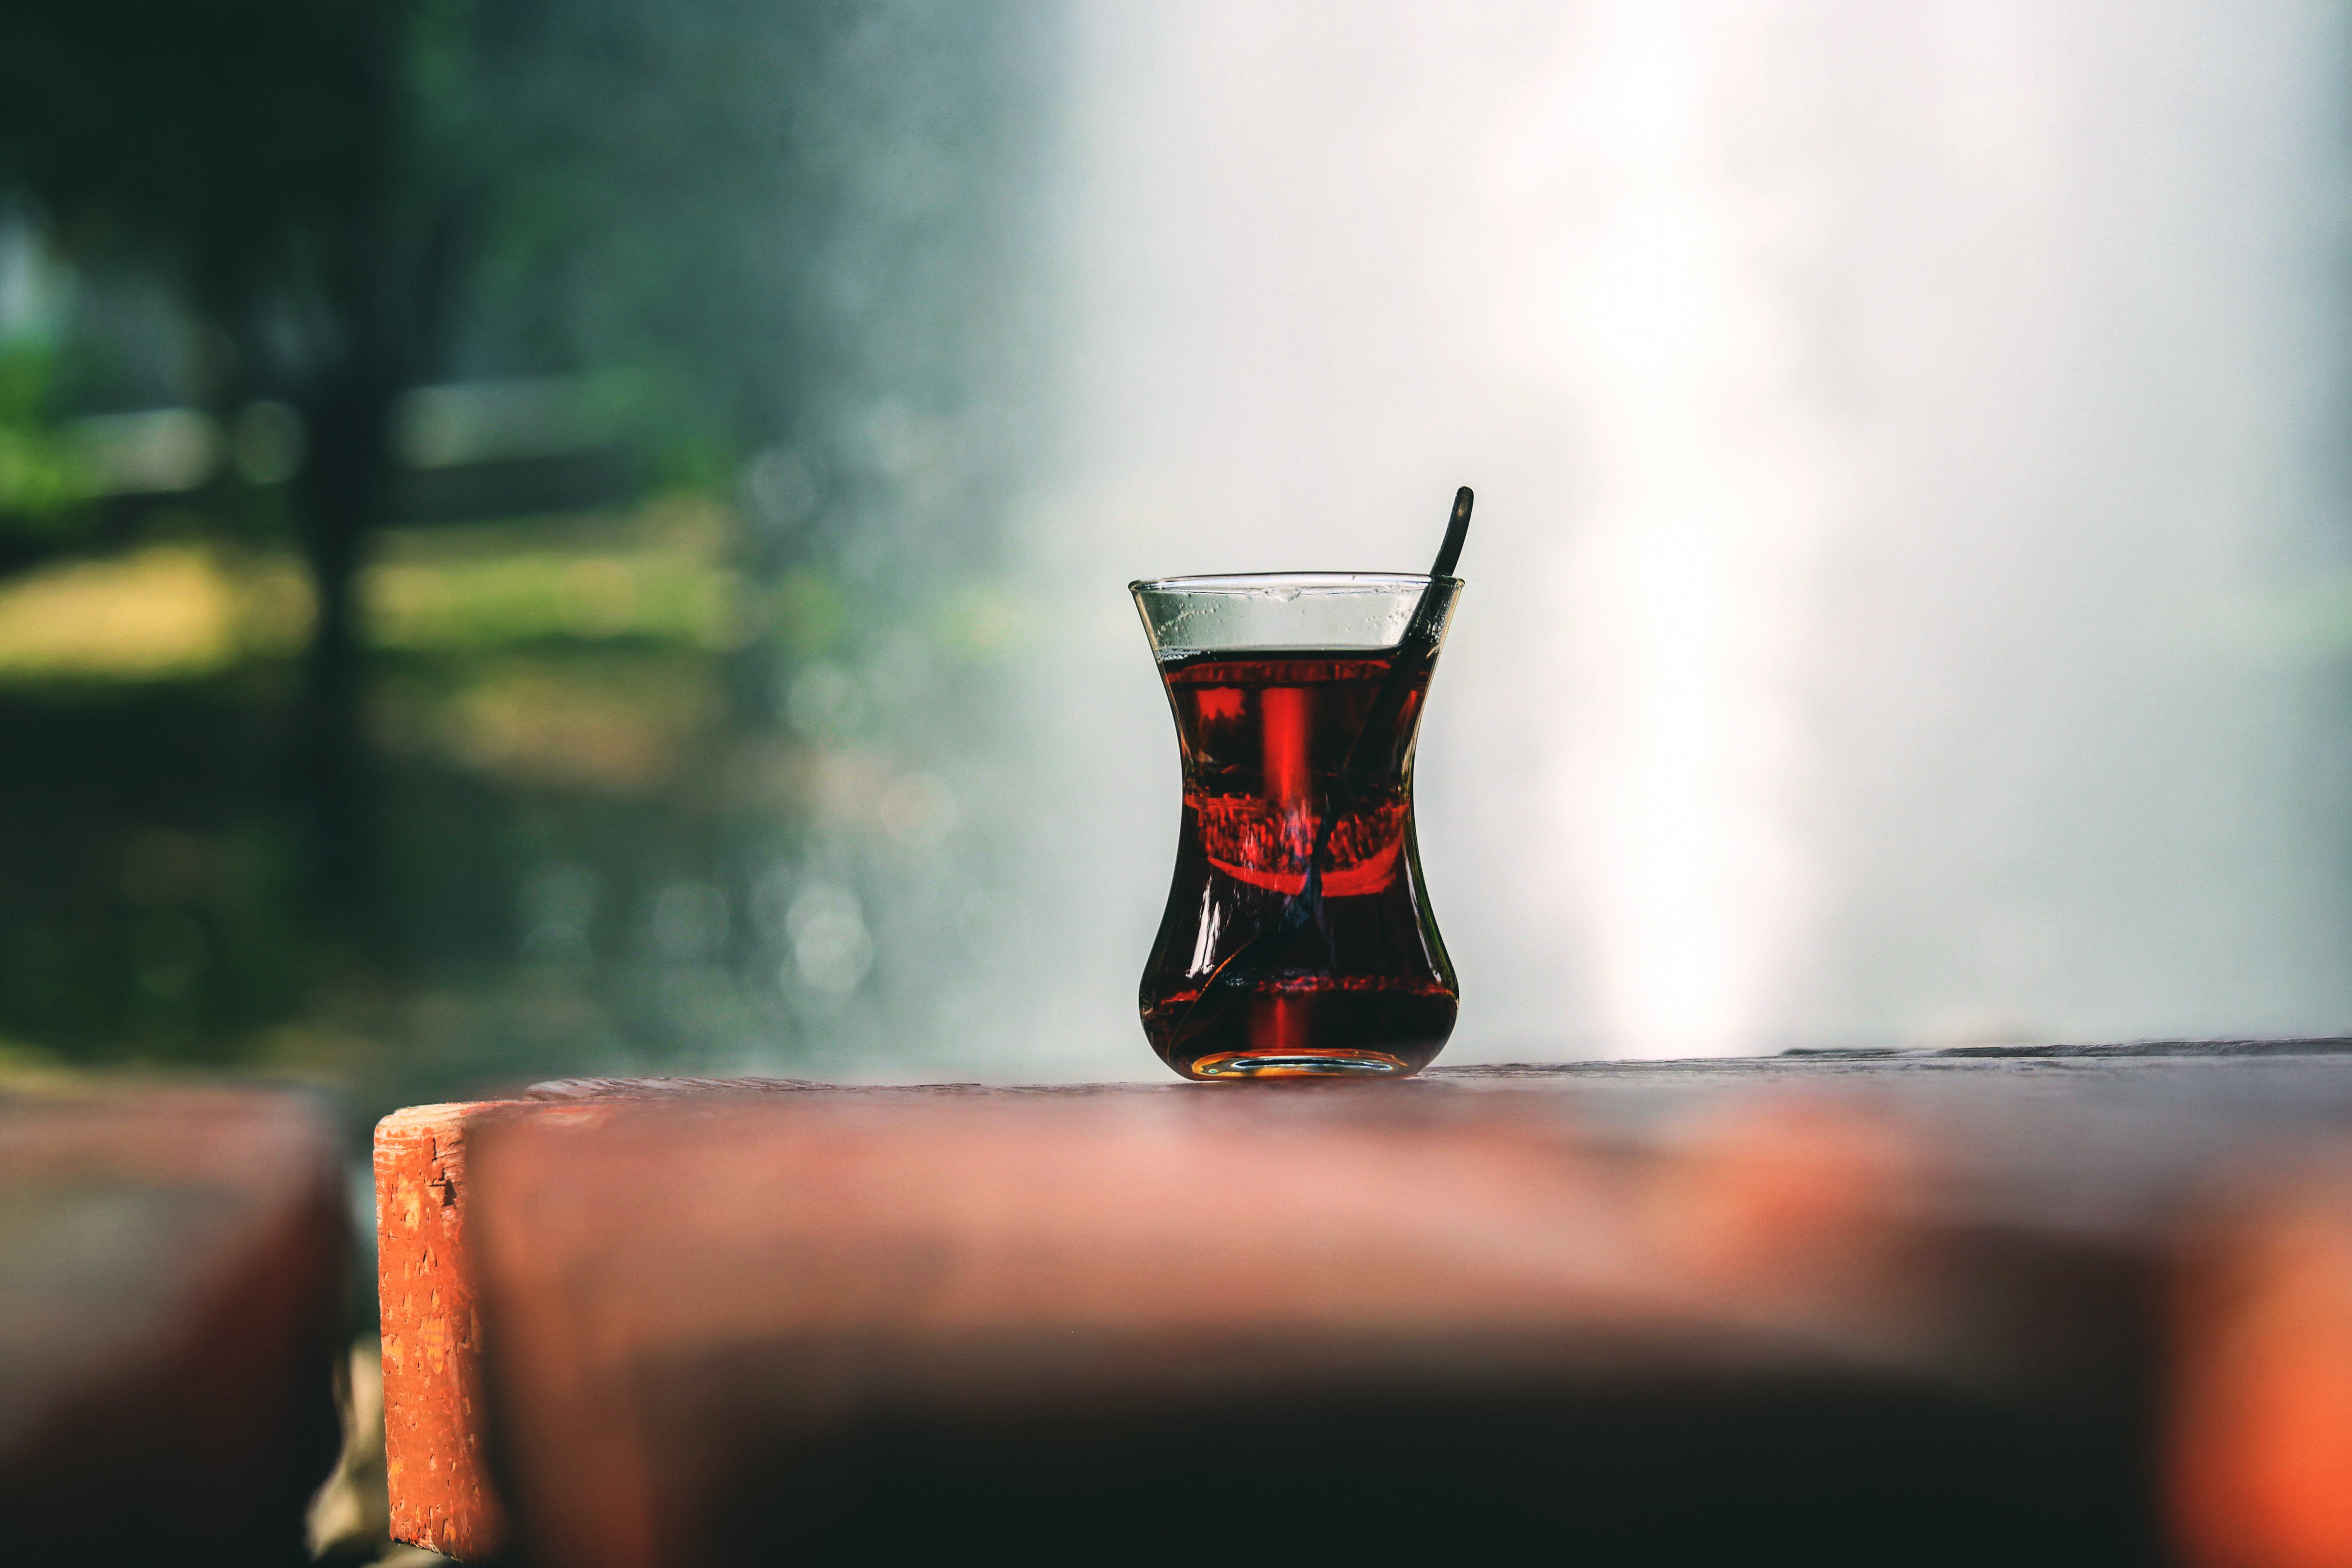 Clear Turkey Tea Glass With Tea on Brown Wooden Table